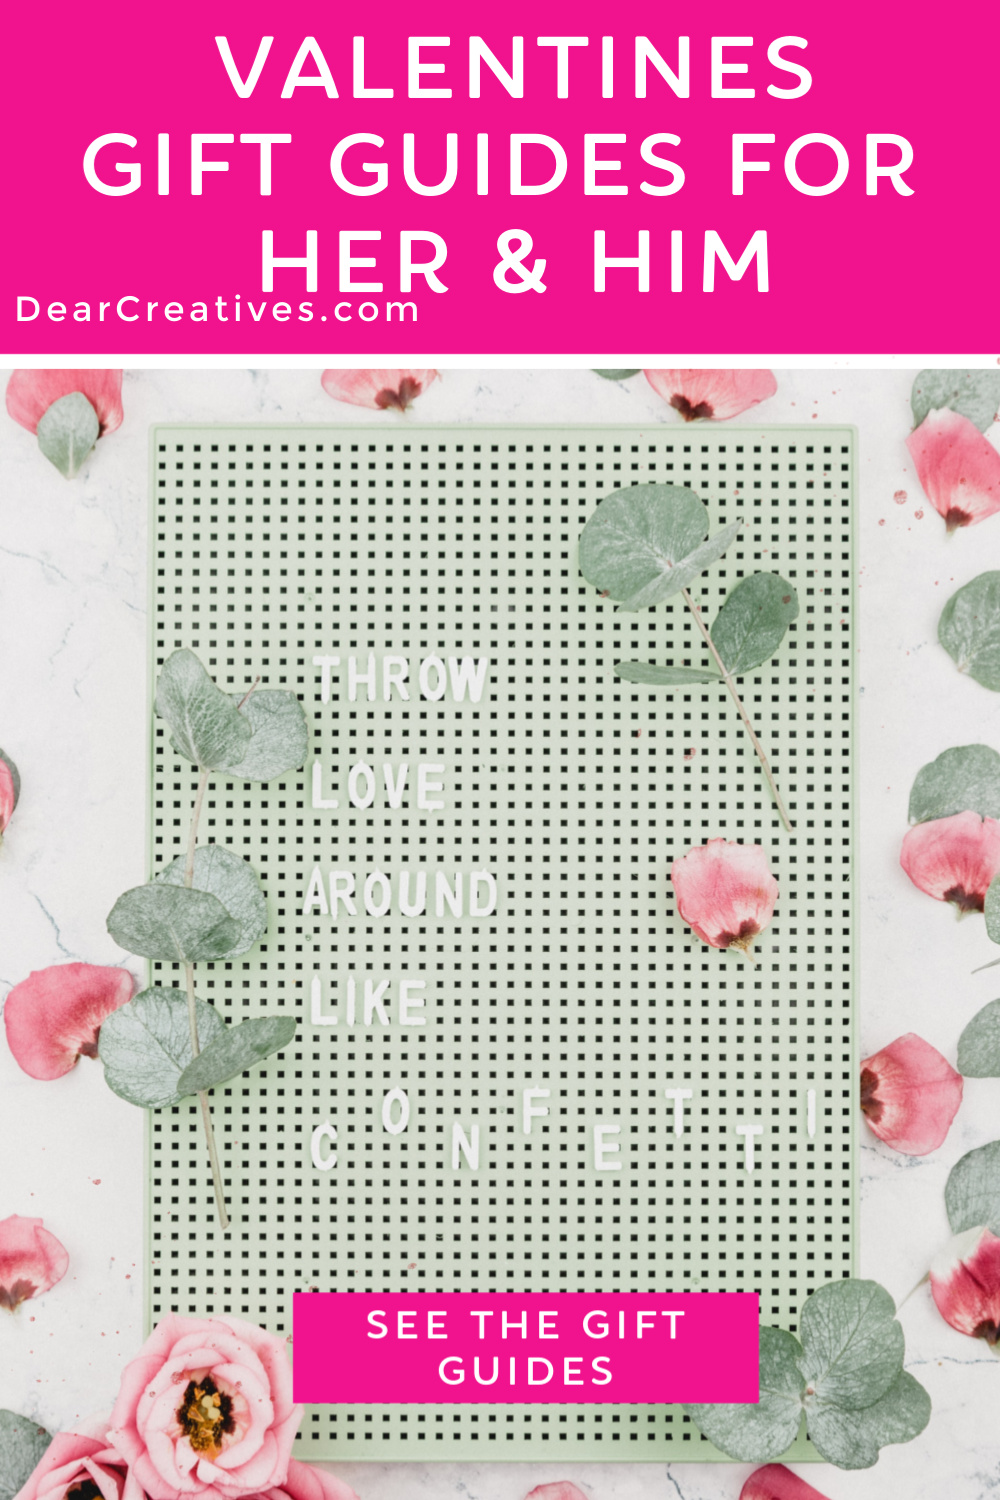 Valentine's Day Gift Guide 2020 Gifts For Her & Him